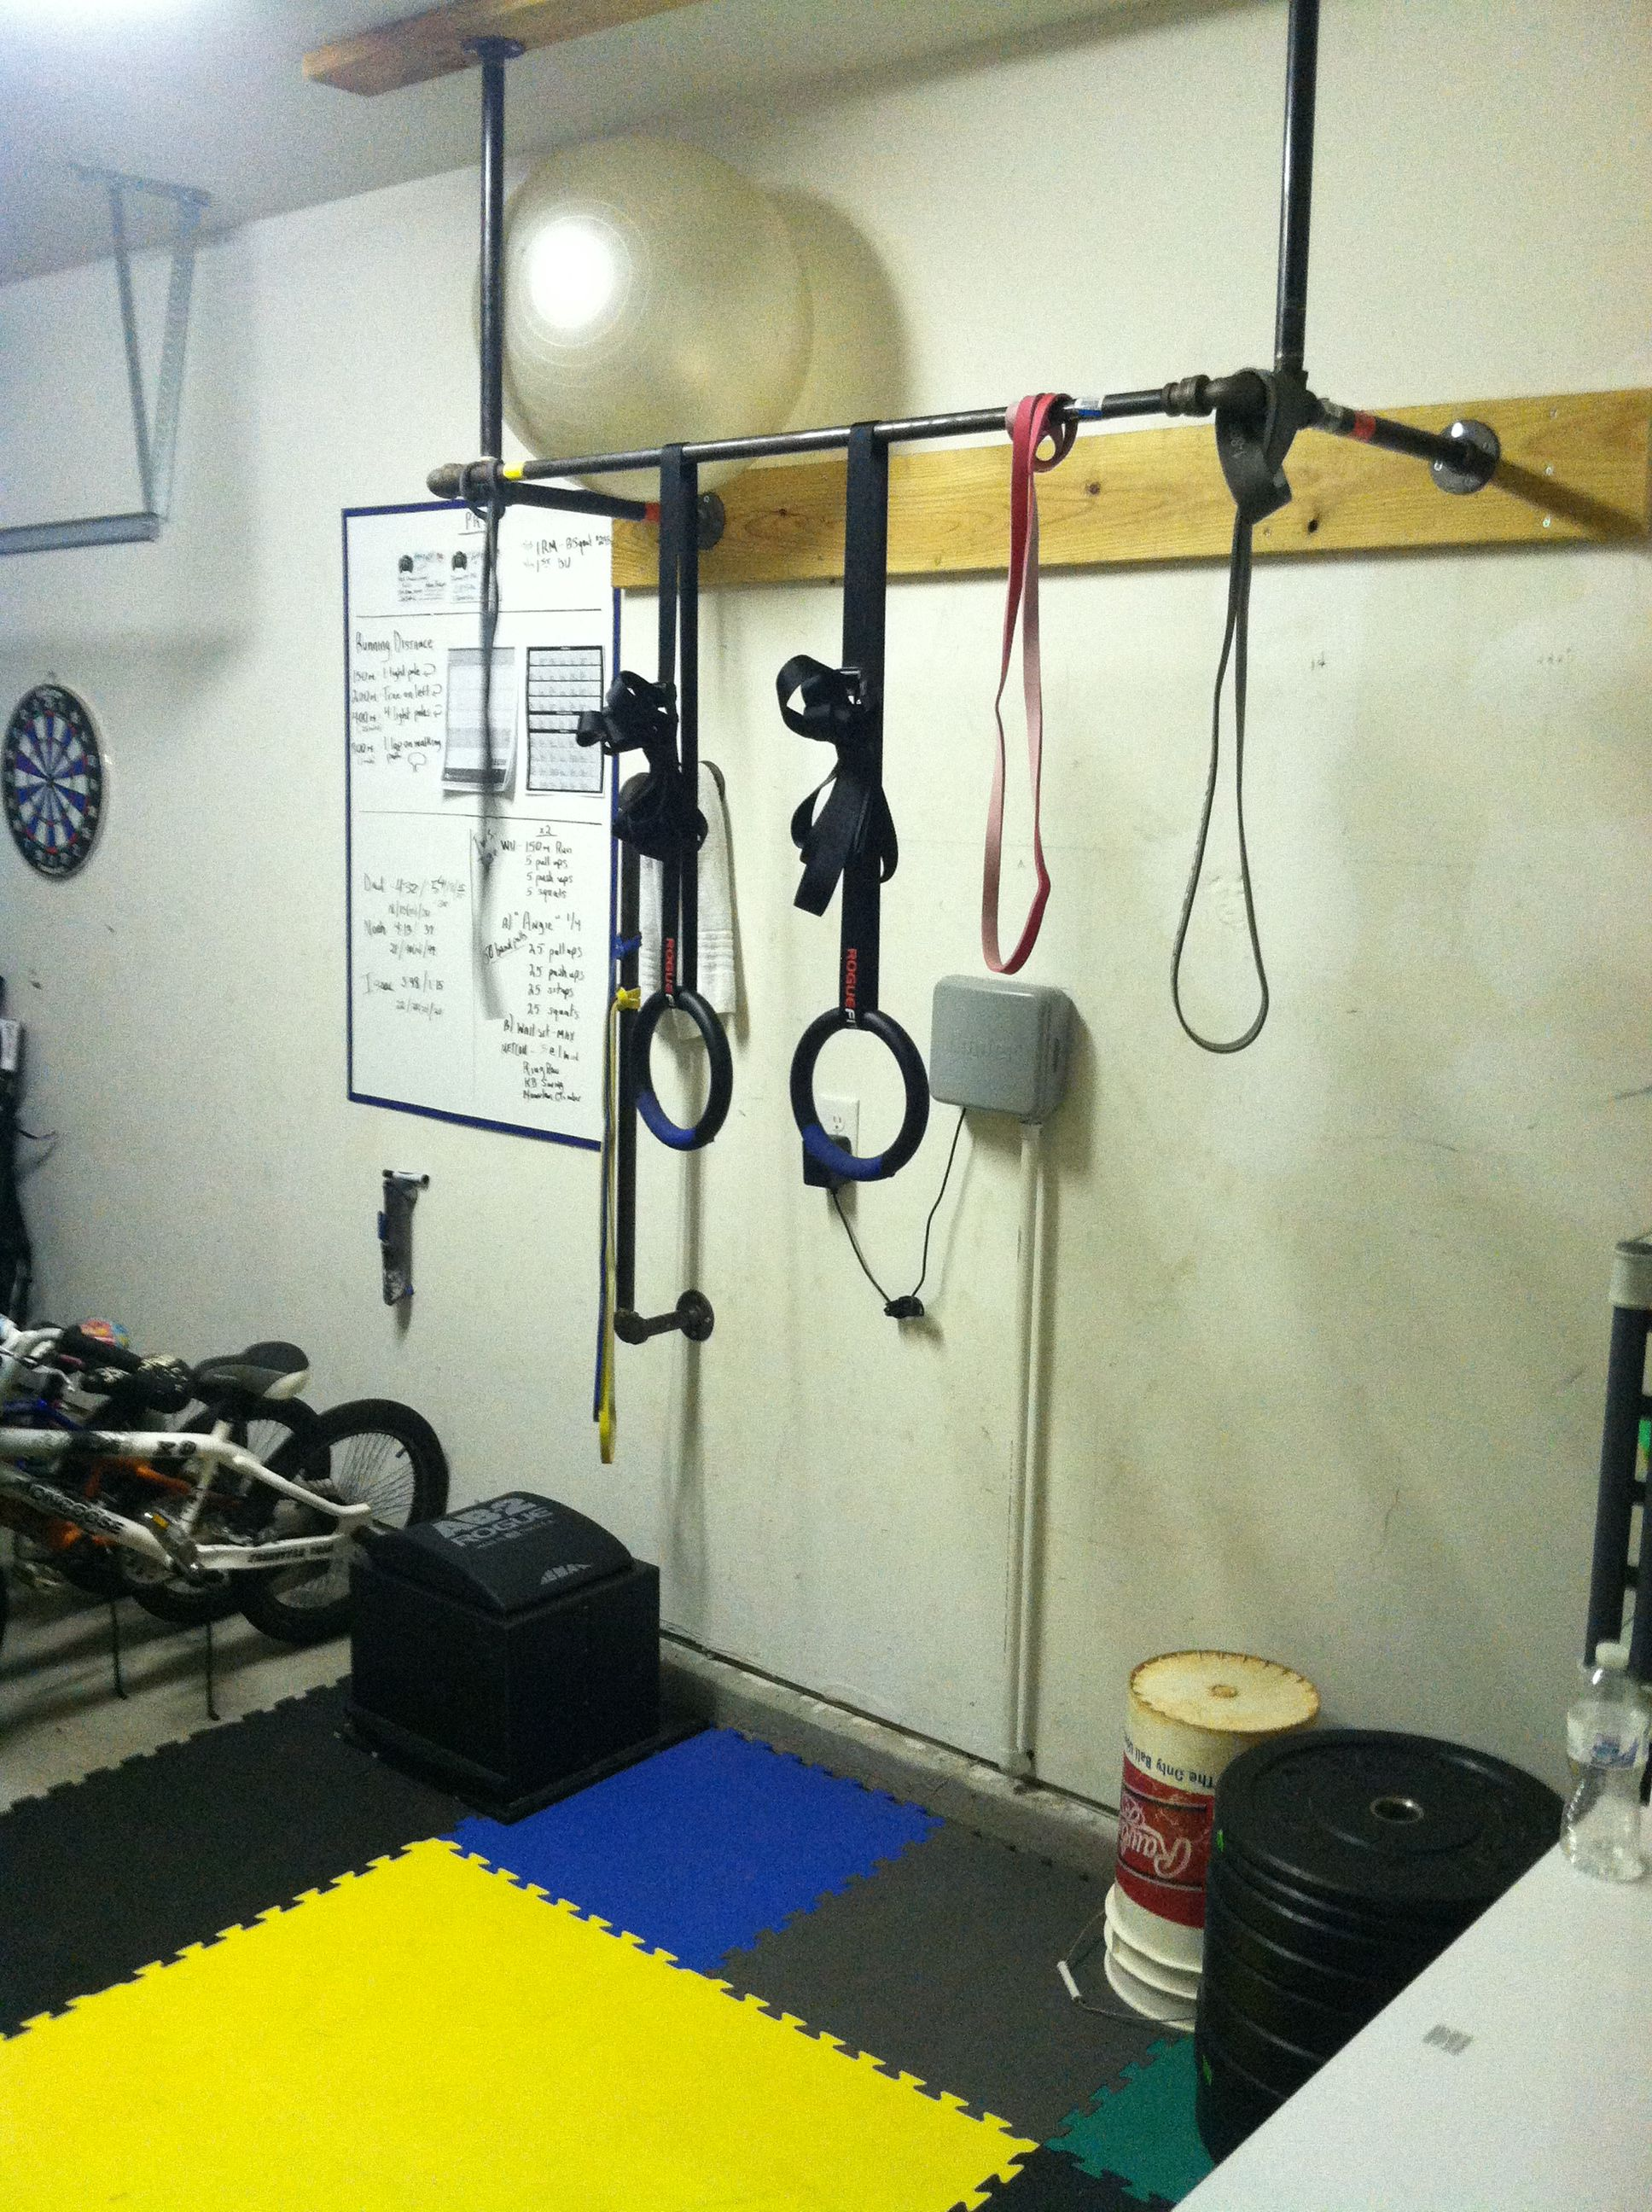 Diy Garage Gym Equipment Homemade Pullup Bar With Used Sprinkler Pipe Before